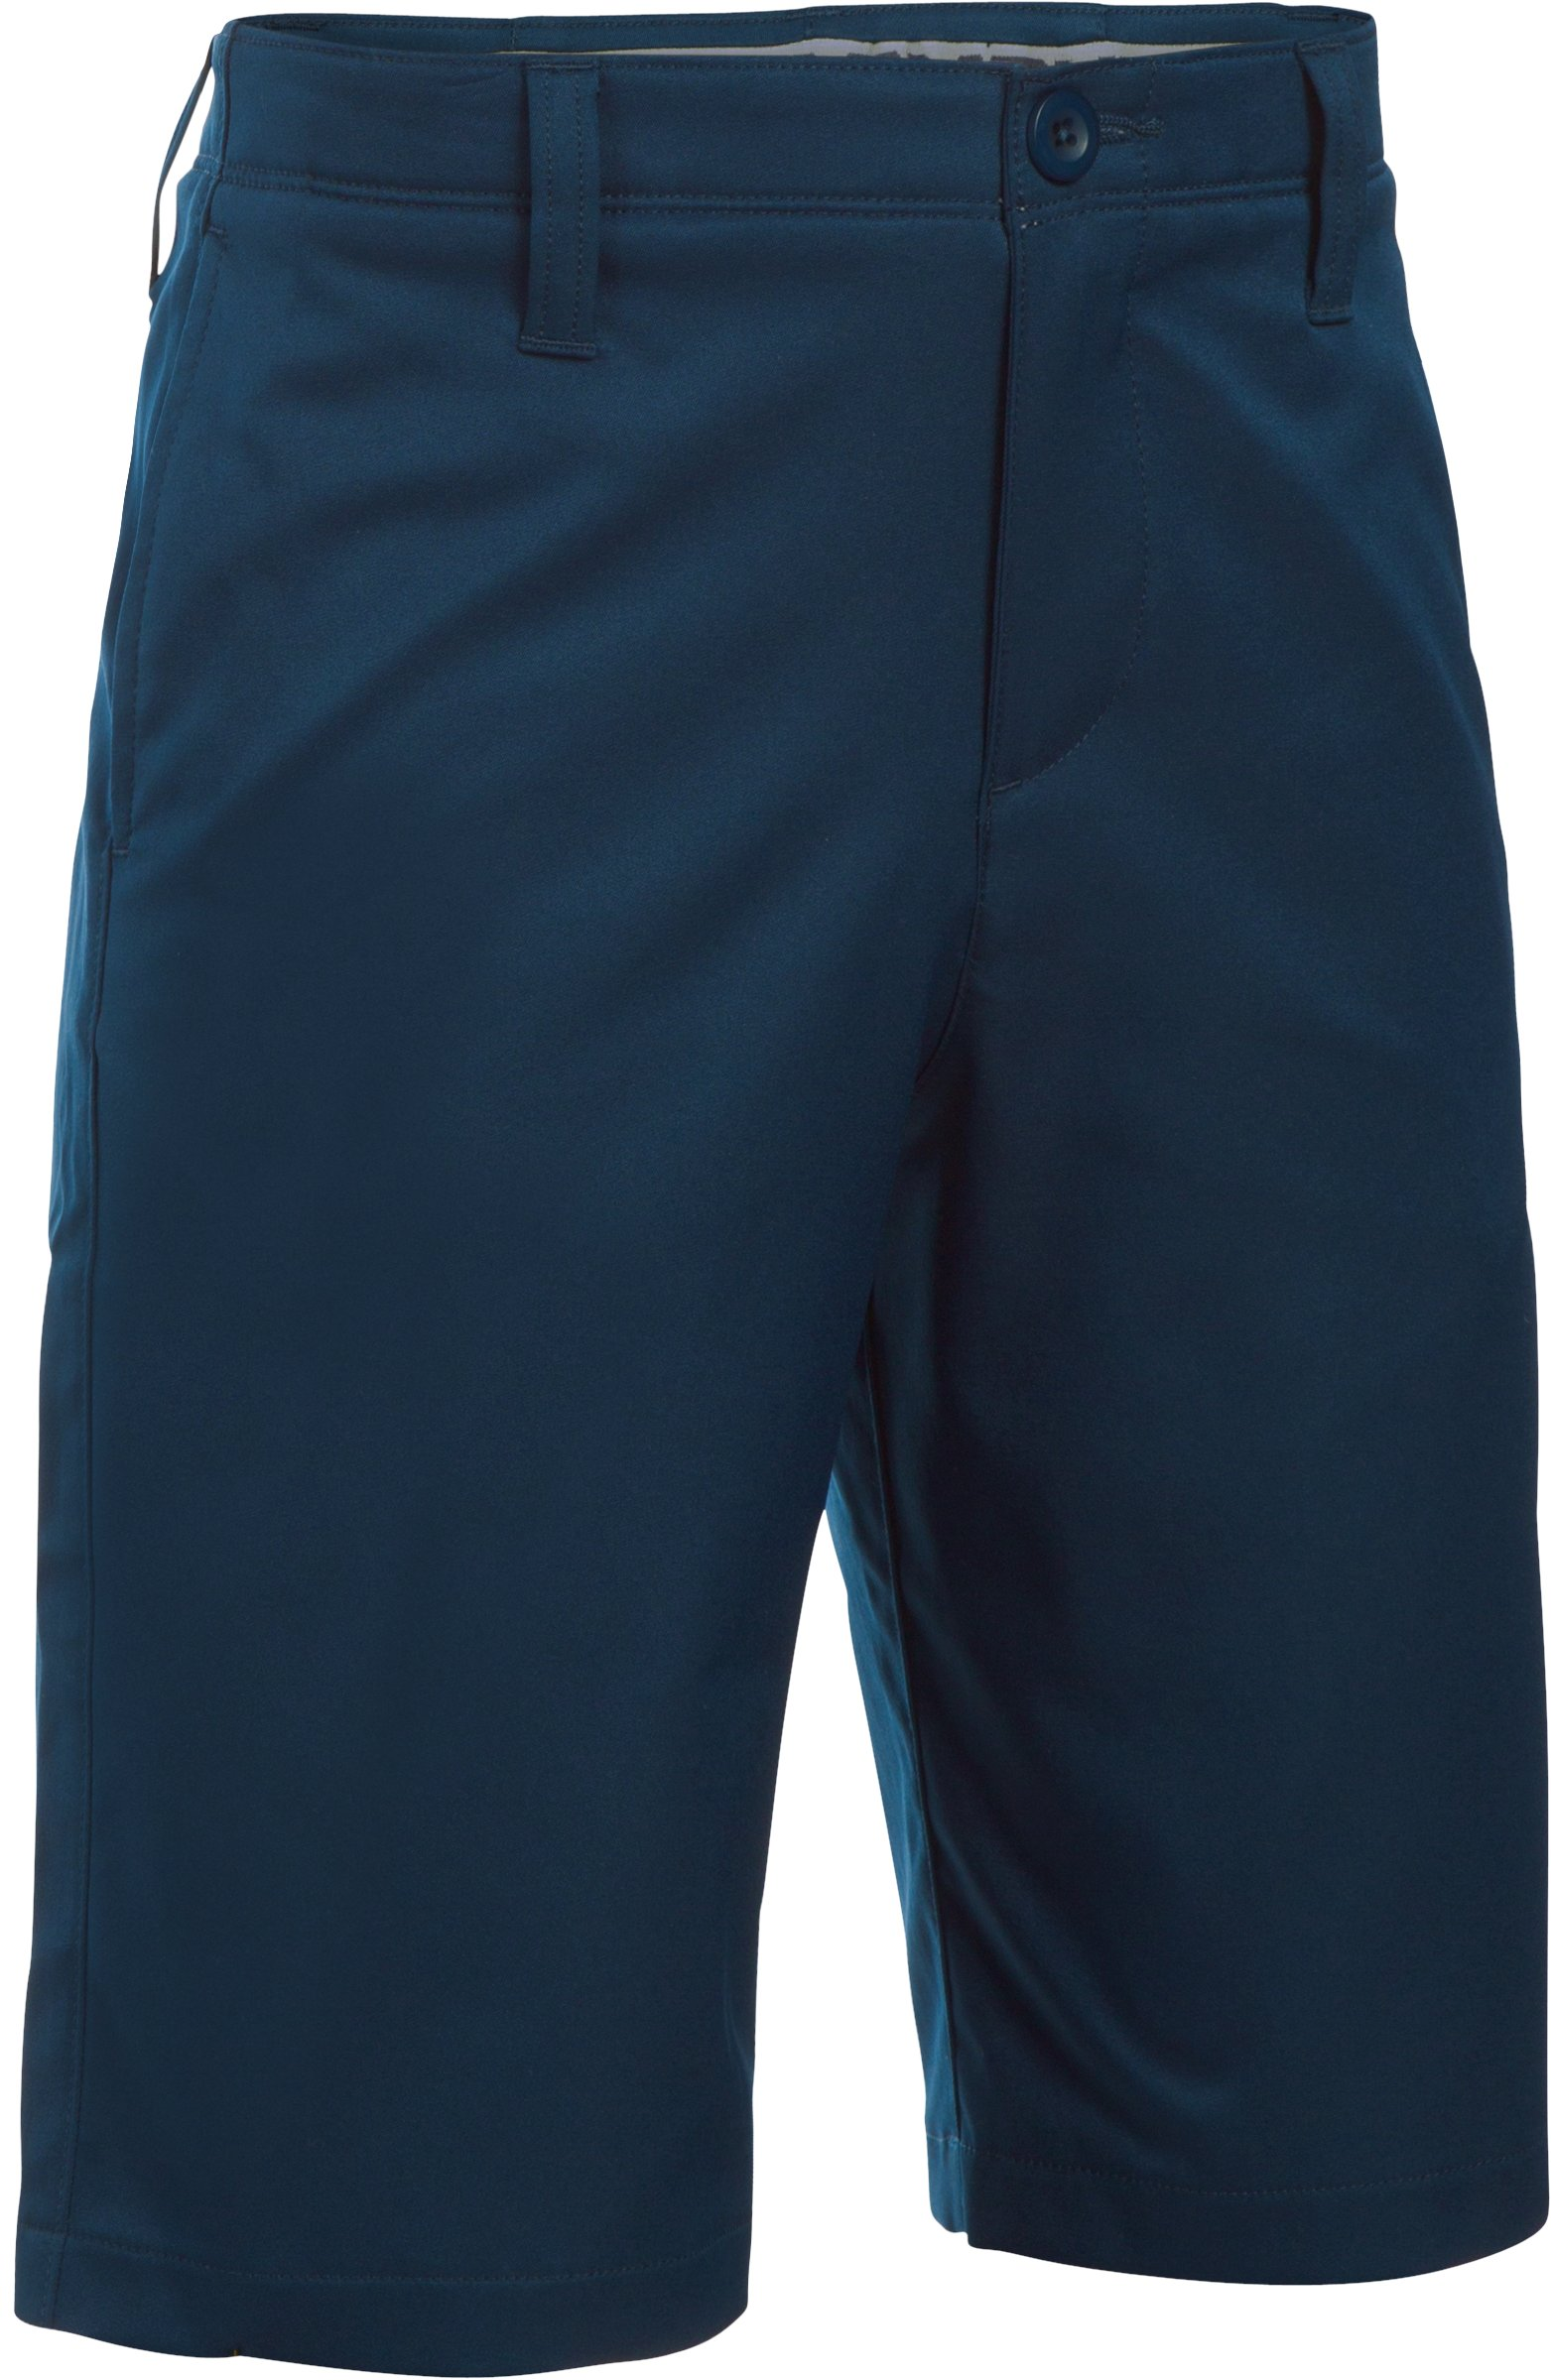 Boys' UA Match Play Shorts, Academy,